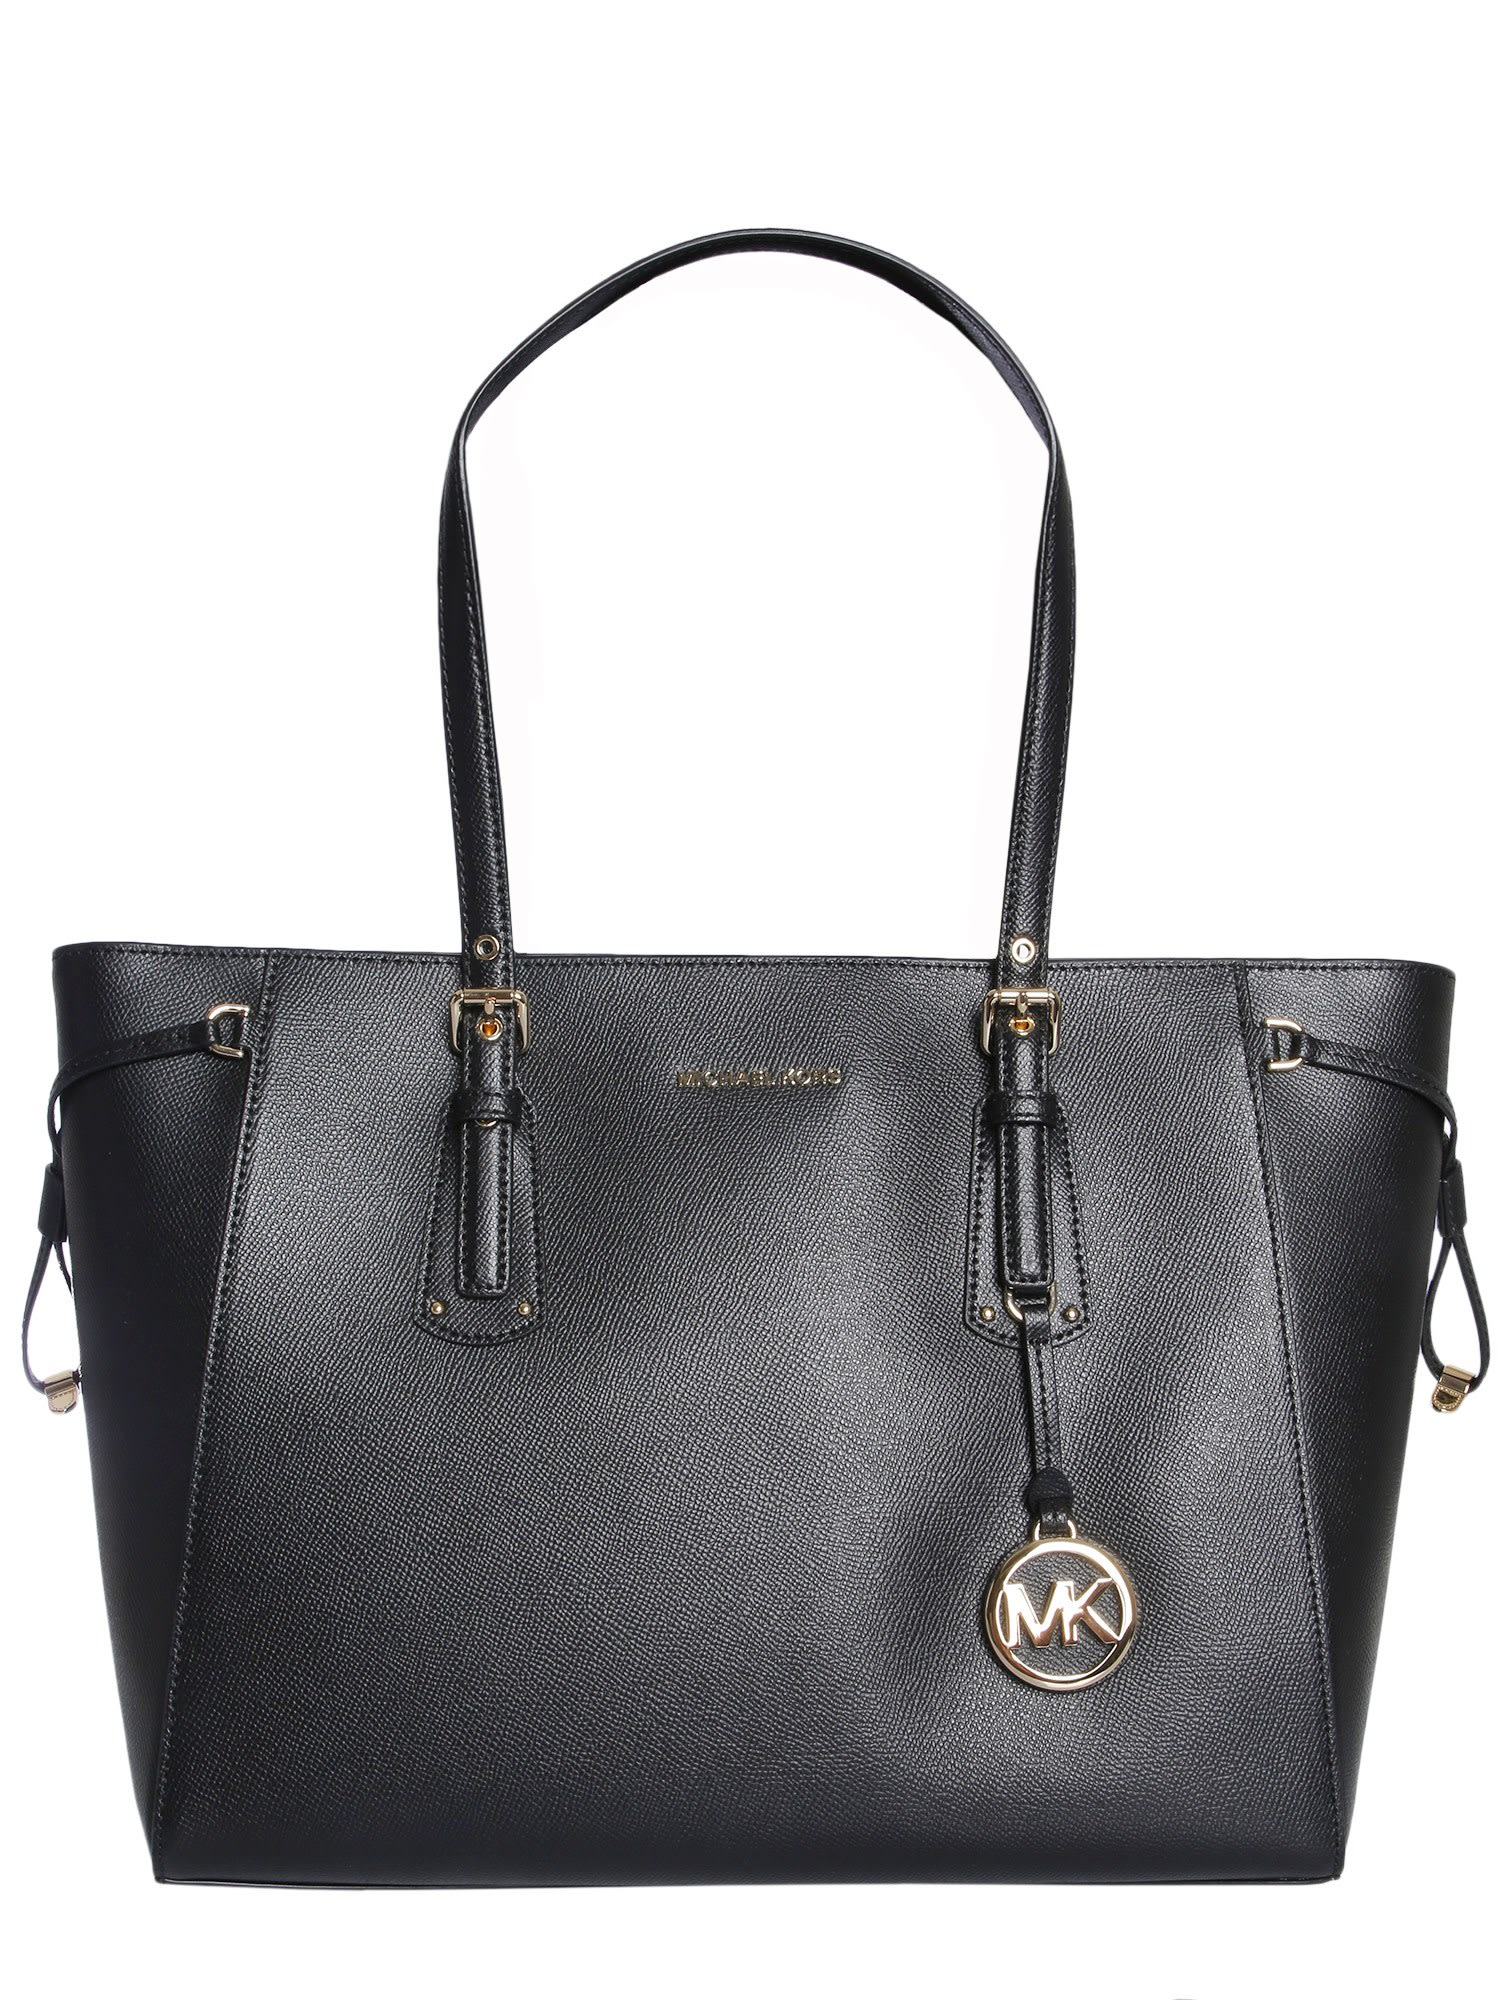 MICHAEL Michael Kors Medium Voyager Tote Bag